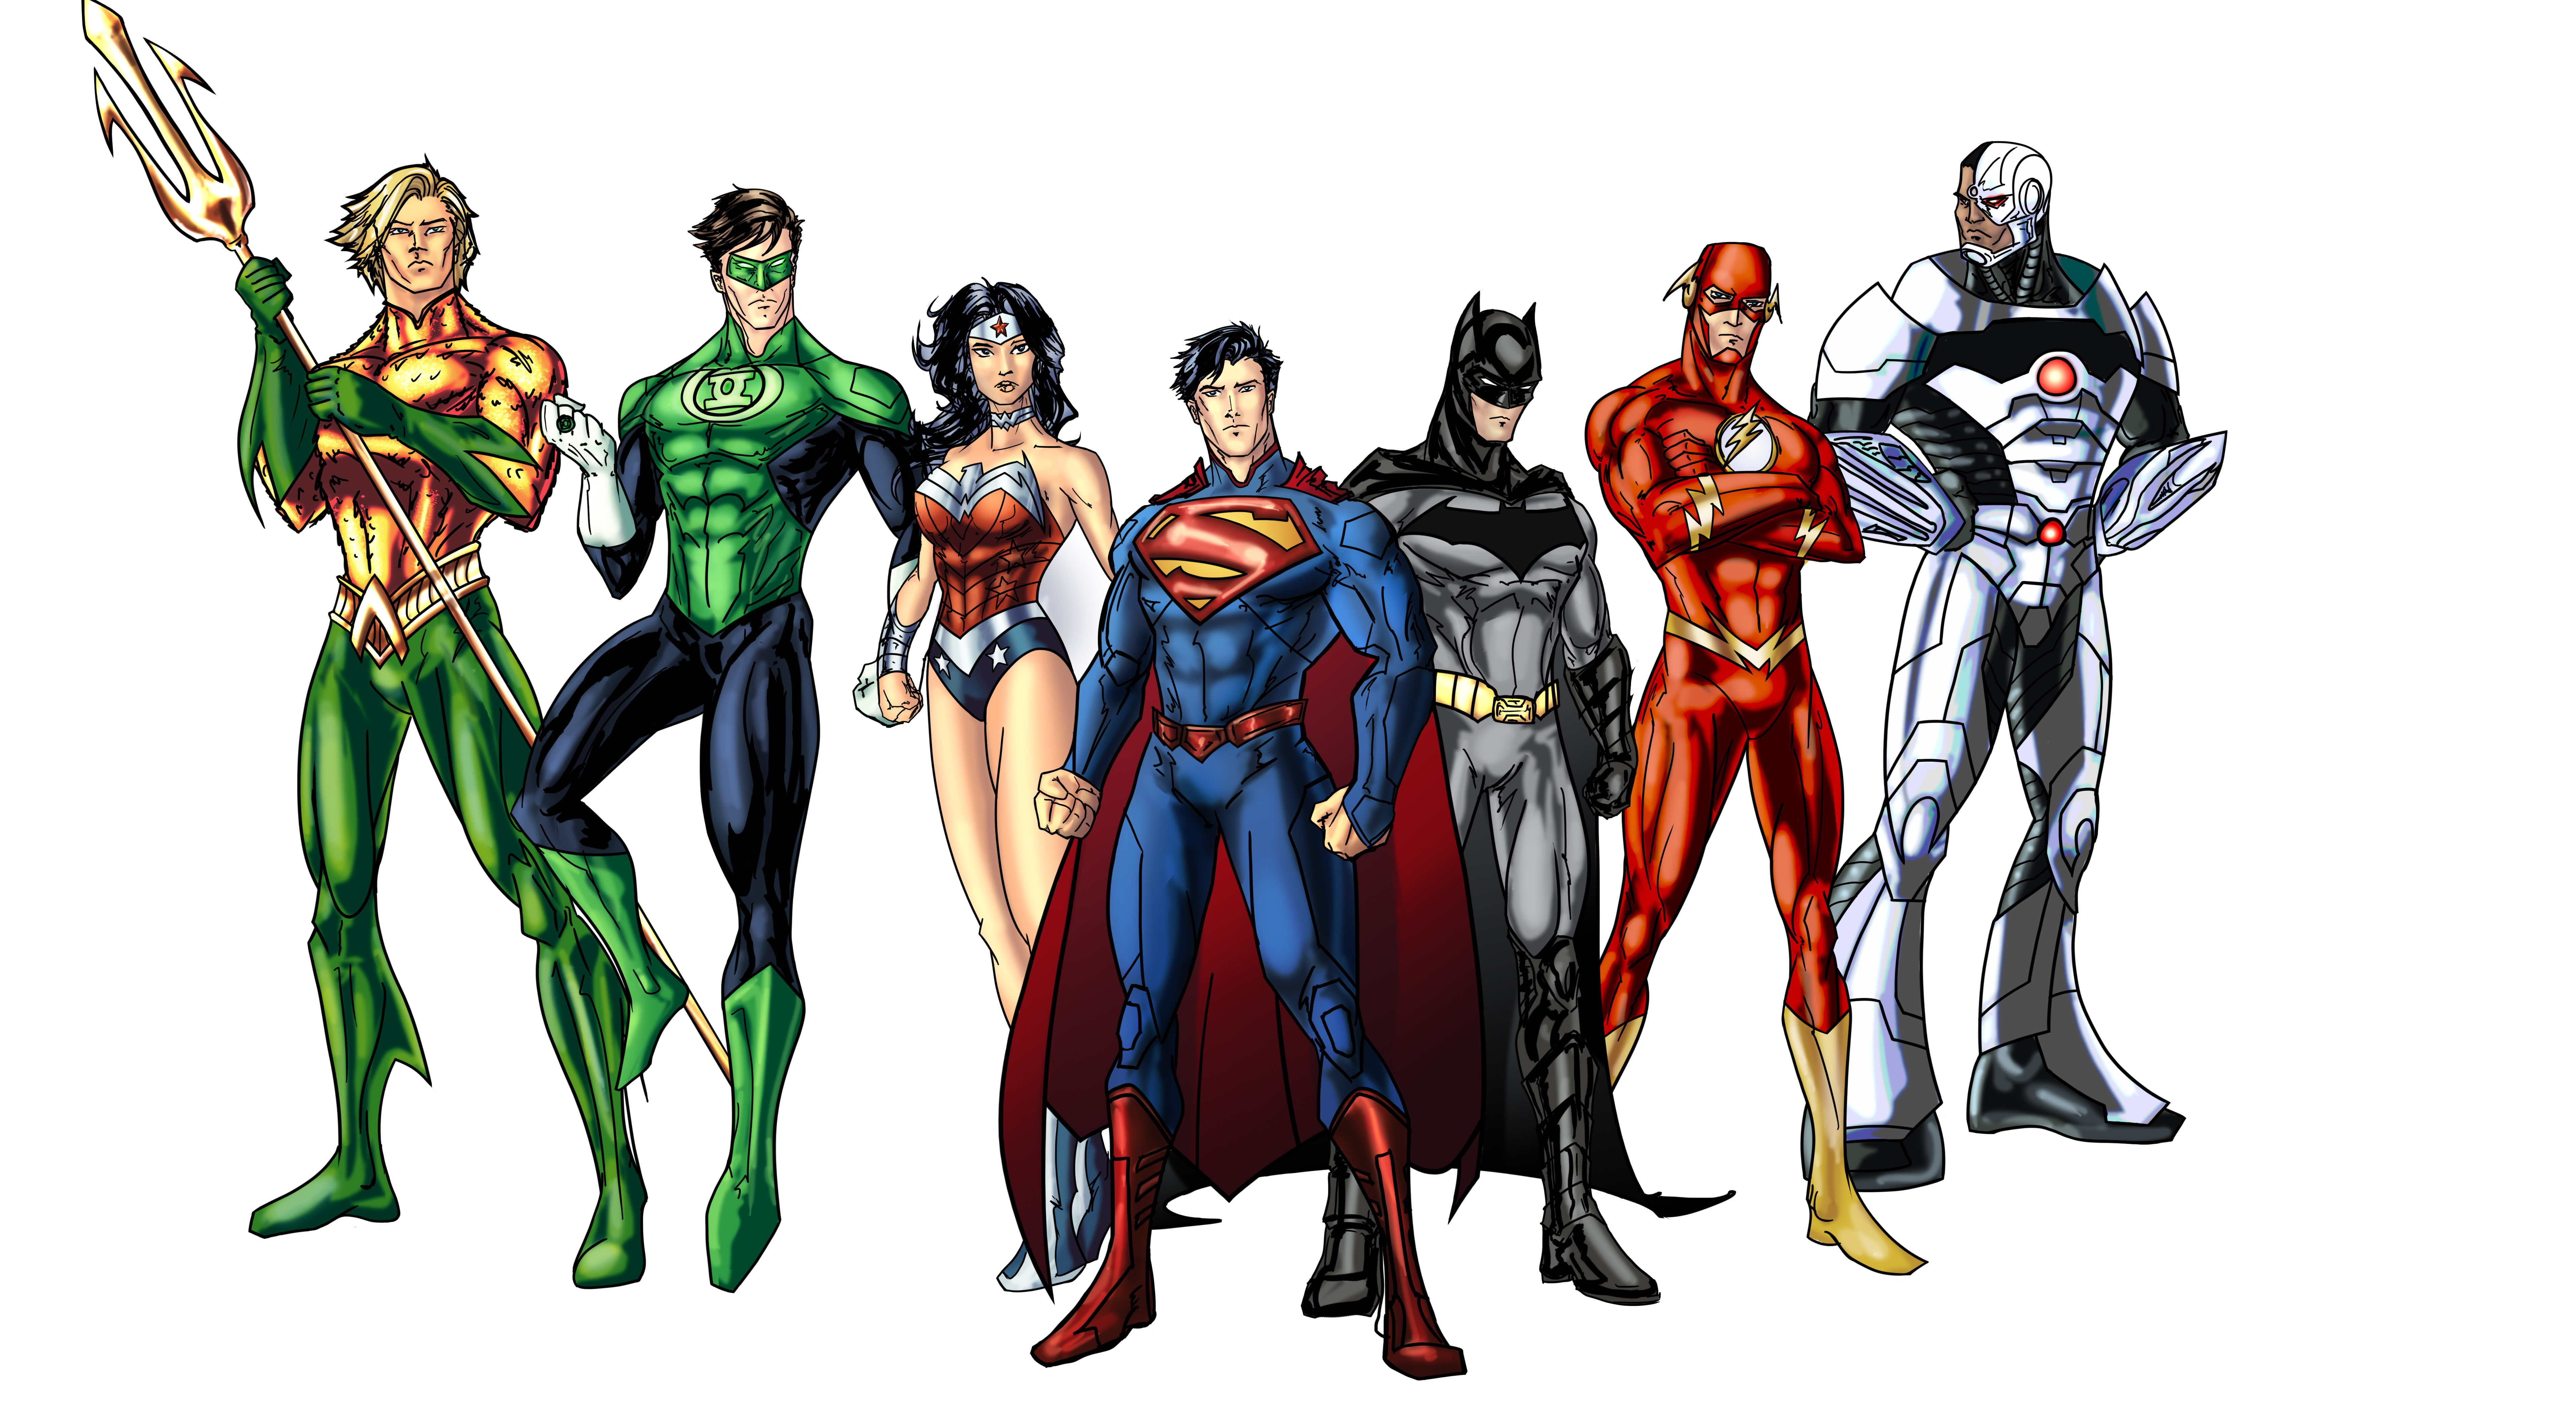 New 52 Justice League More Wip By Randomality85 Deviantart Com On